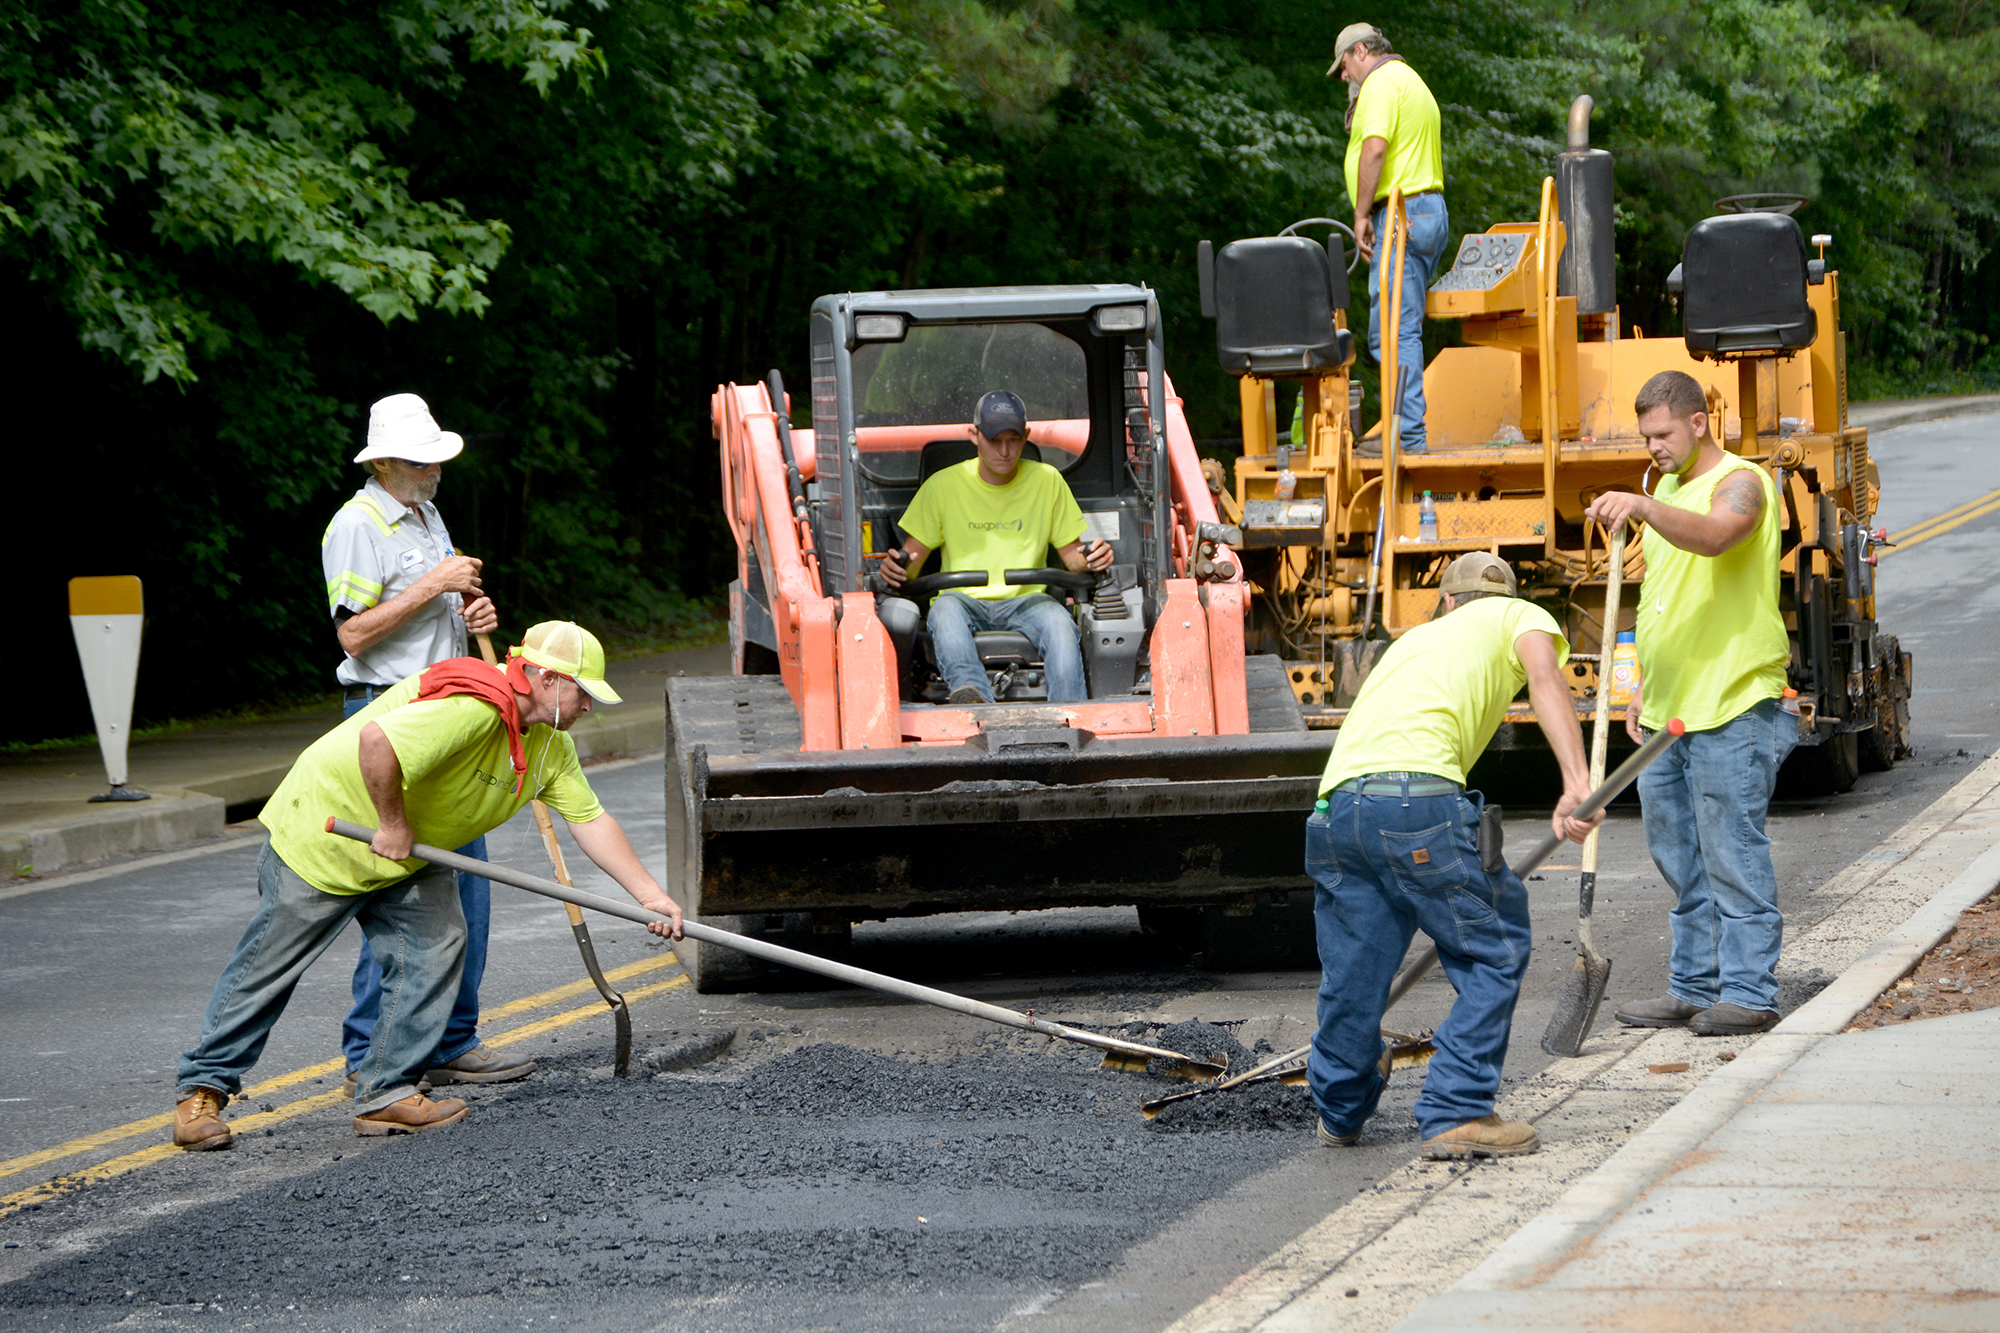 City completes third year of Neighborhood Repaving program